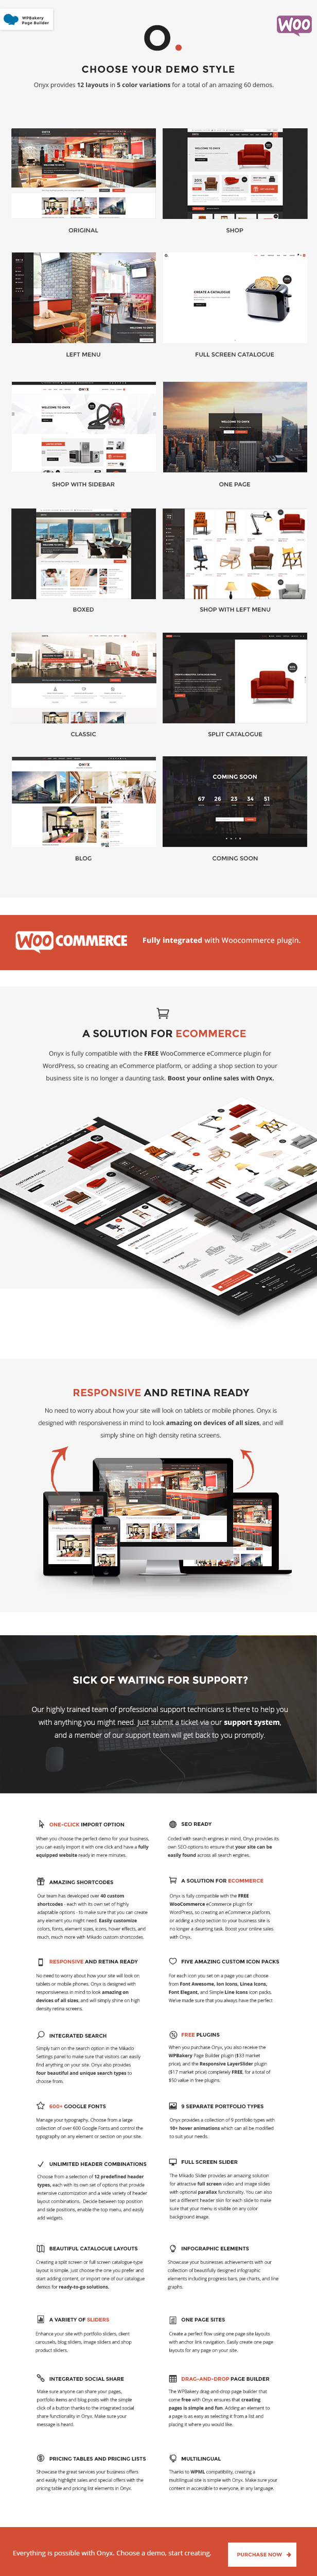 Onyx - Multi-Concept Business Theme - 1